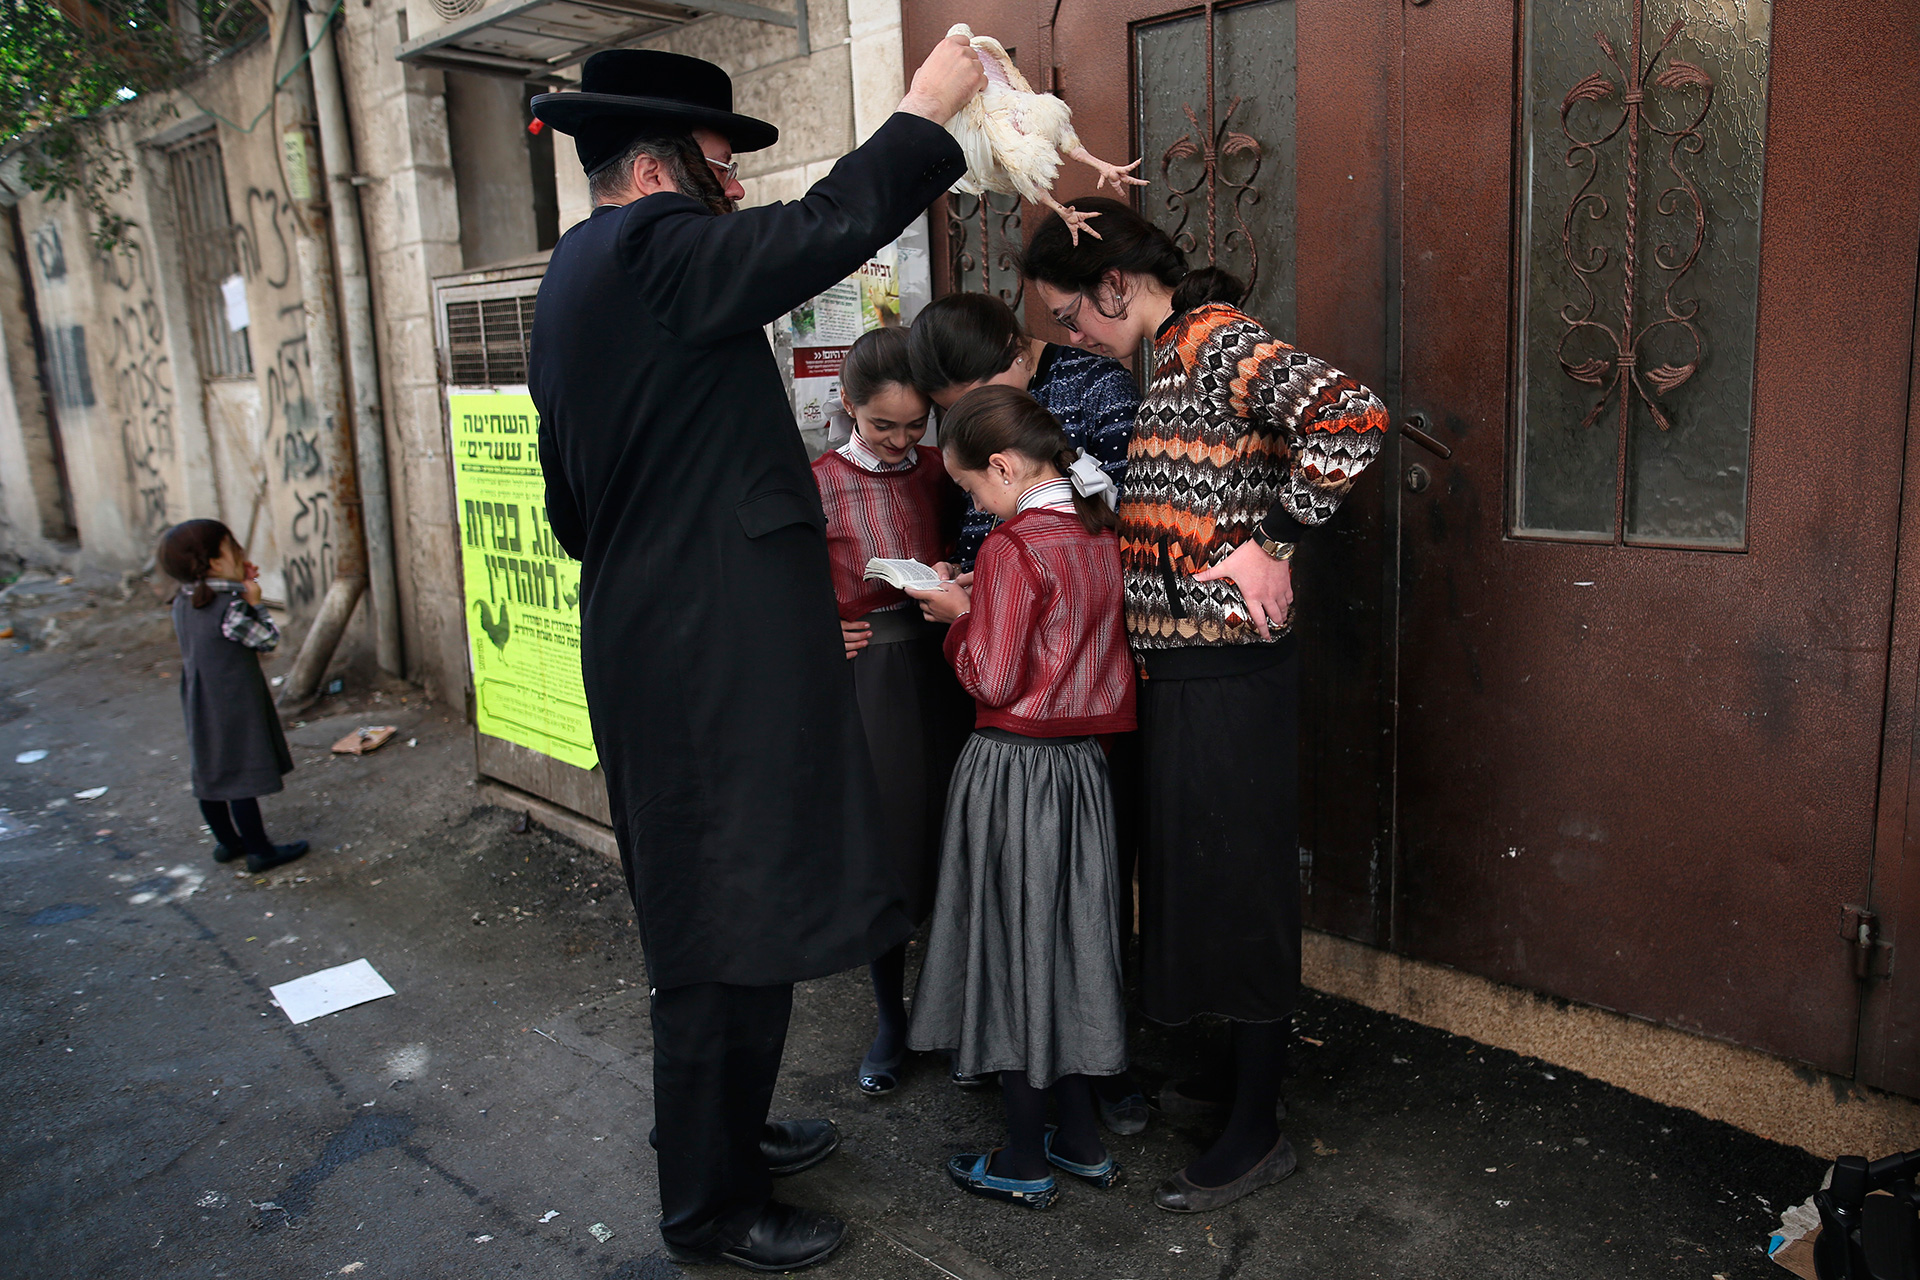 mount judea jewish girl personals A 10-year-old jewish girl in france has been hospitalized after she suffered a beating from her classmates in paris, according to a report by the bnvca, the french watchdog national bureau for.